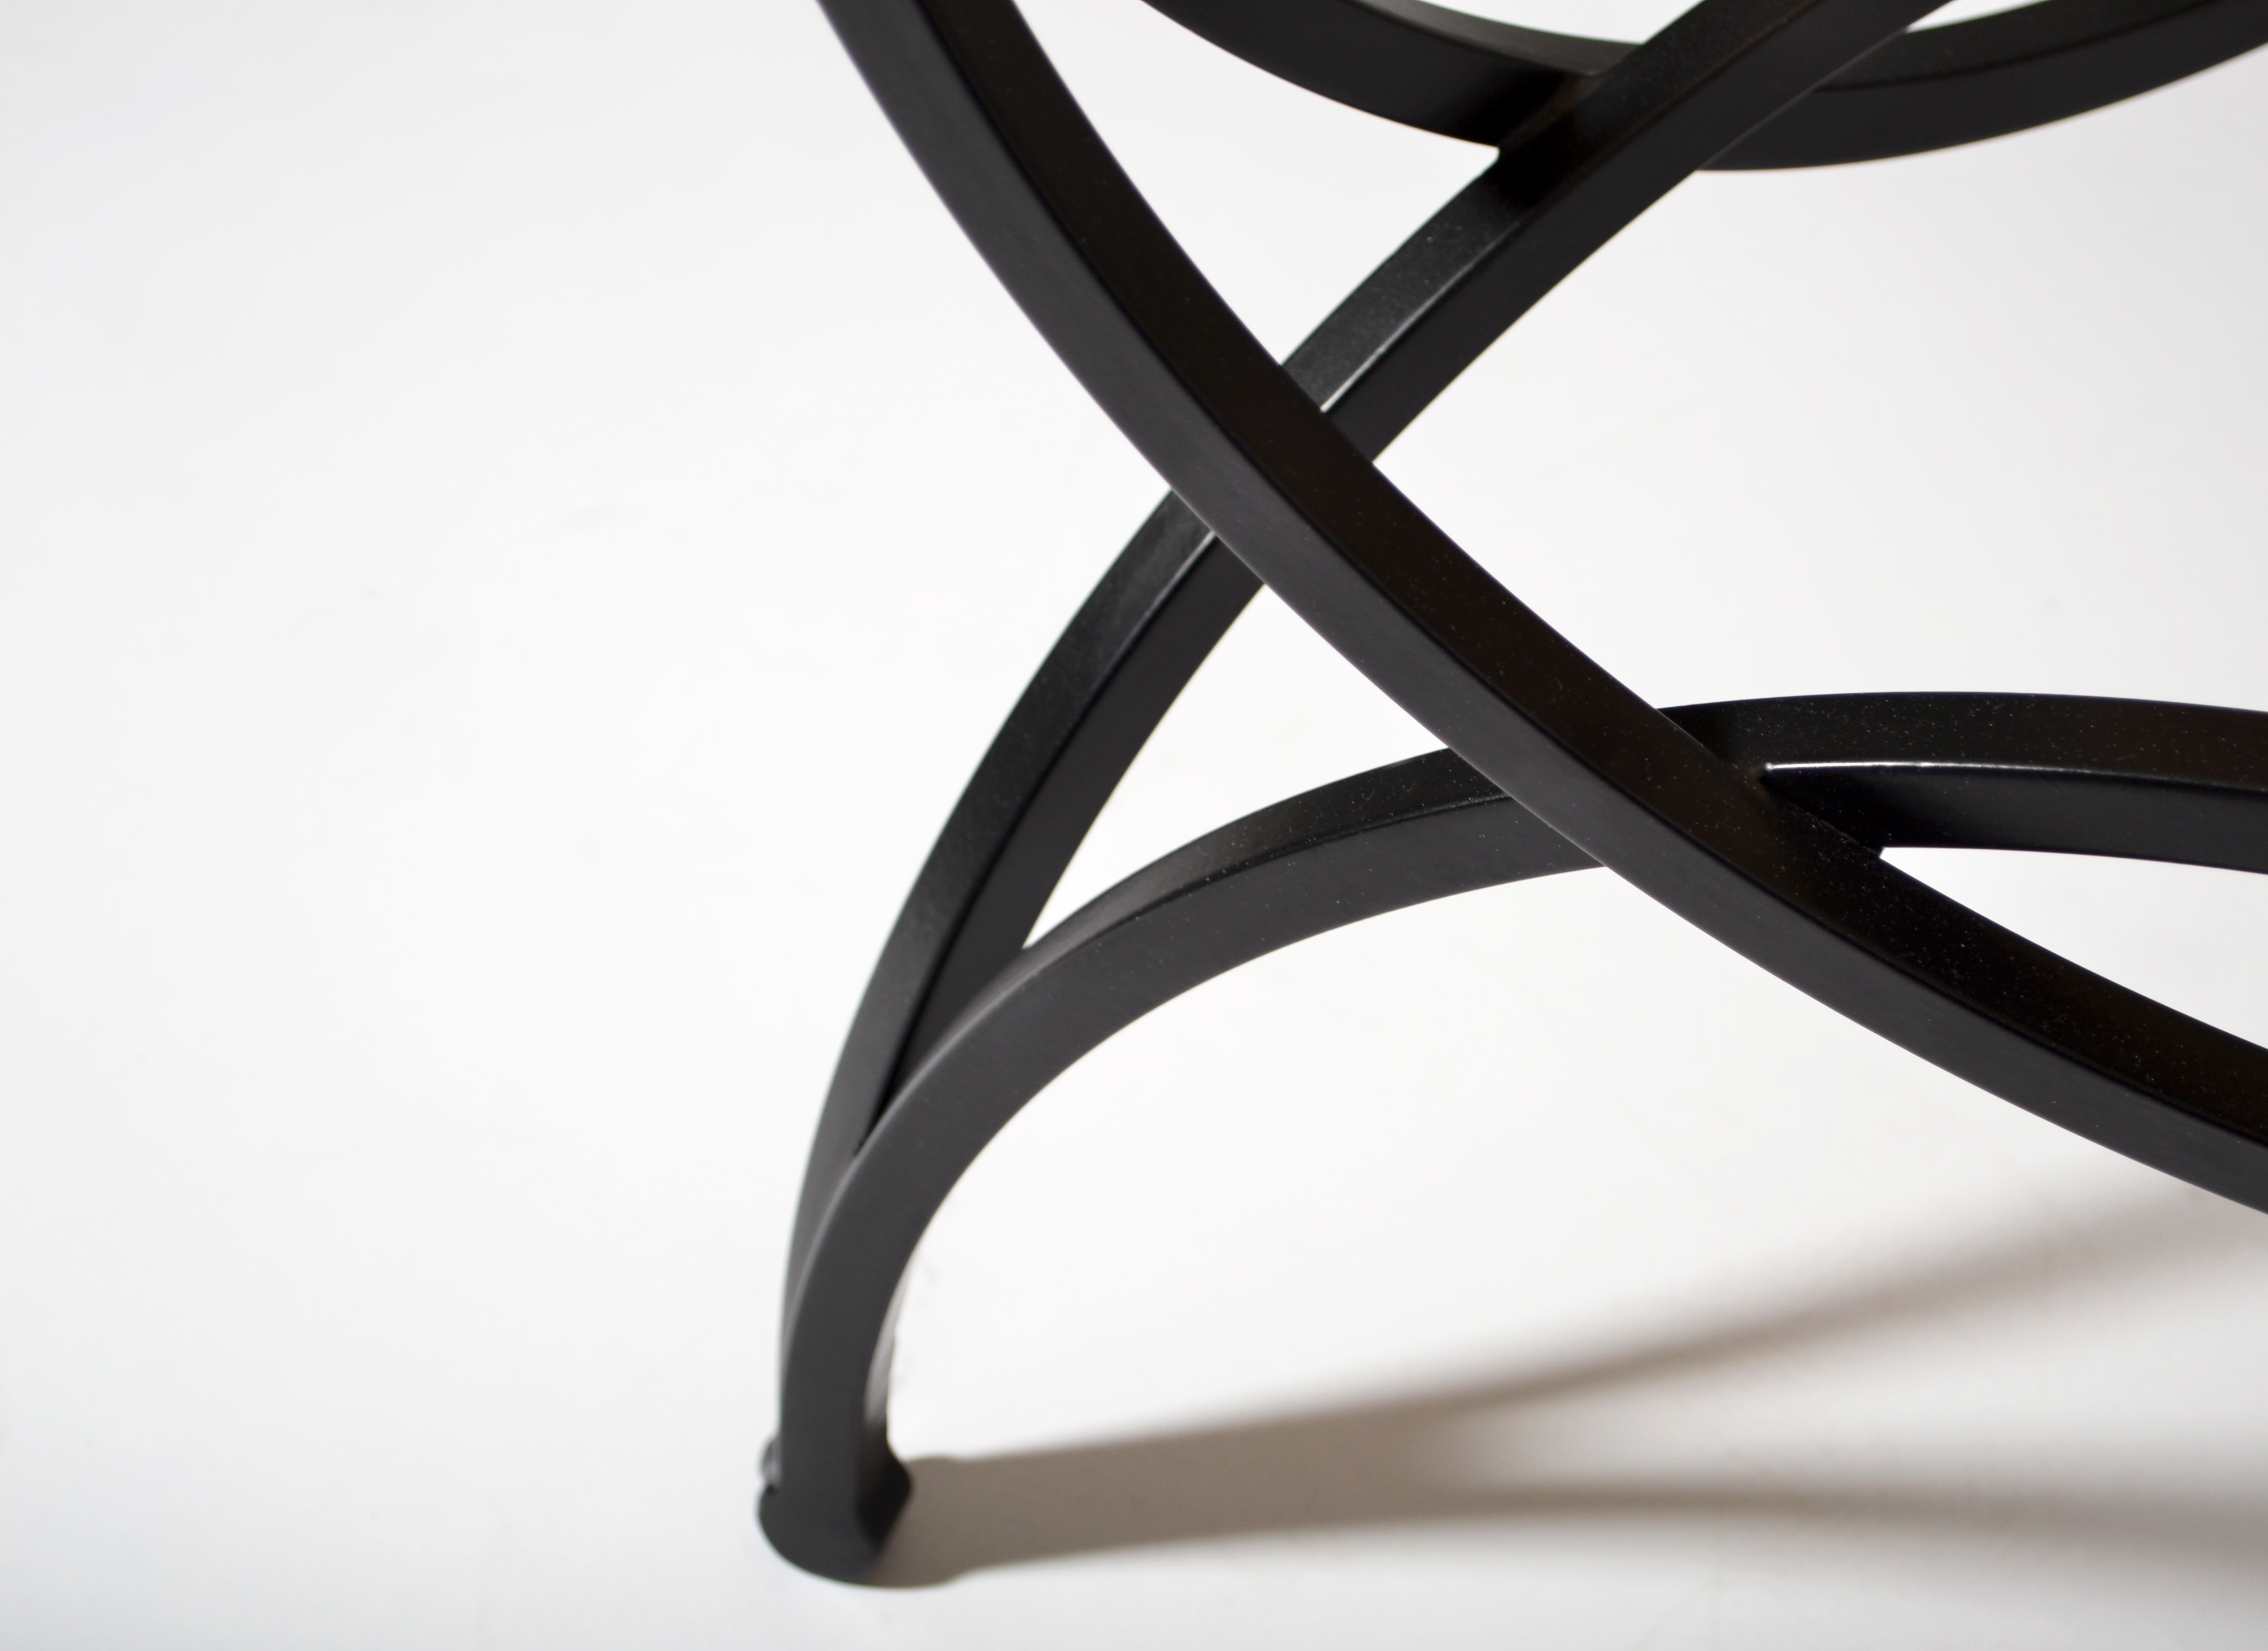 The Sessio Chair